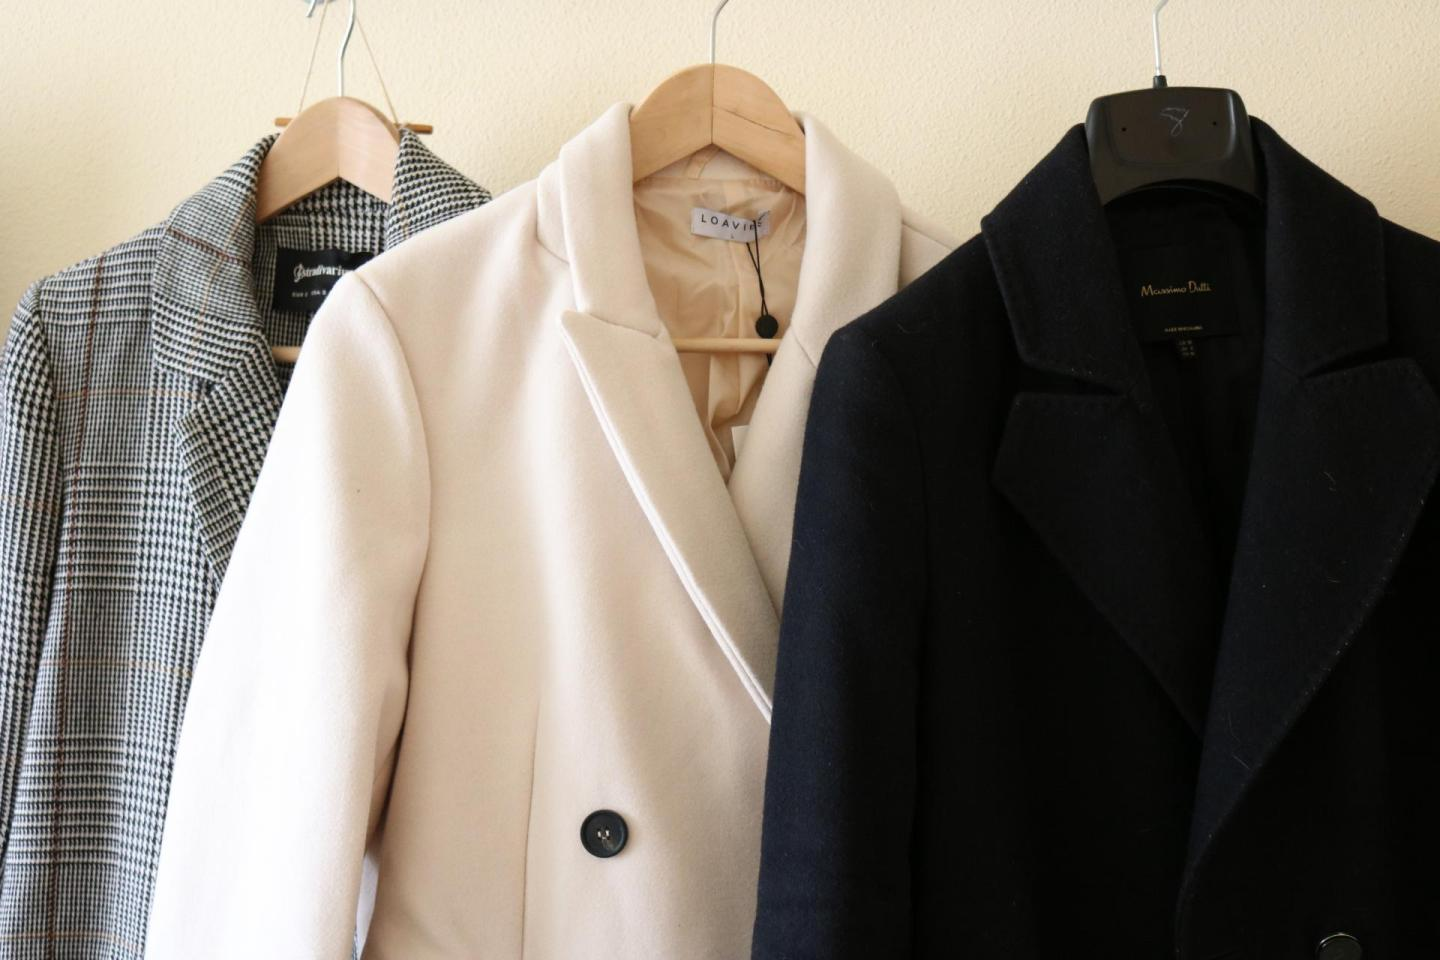 Reorganizing the coats and blazers like Marie Kondo